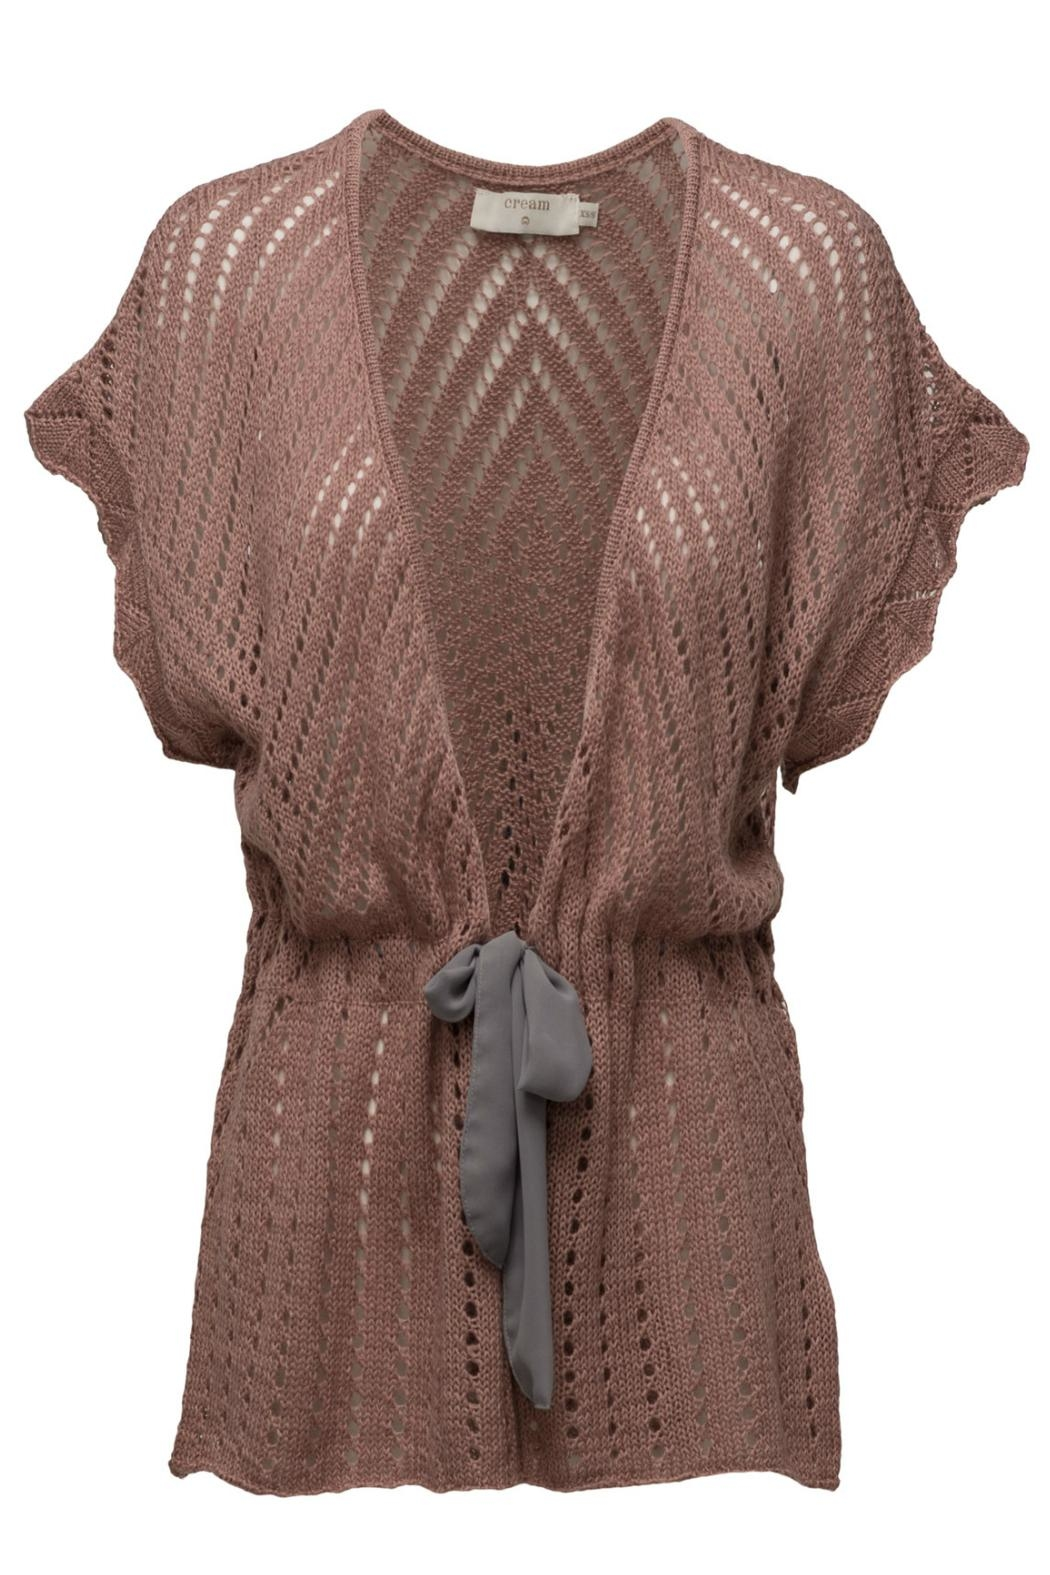 Cream Knit Open Cardigan - Front Cropped Image